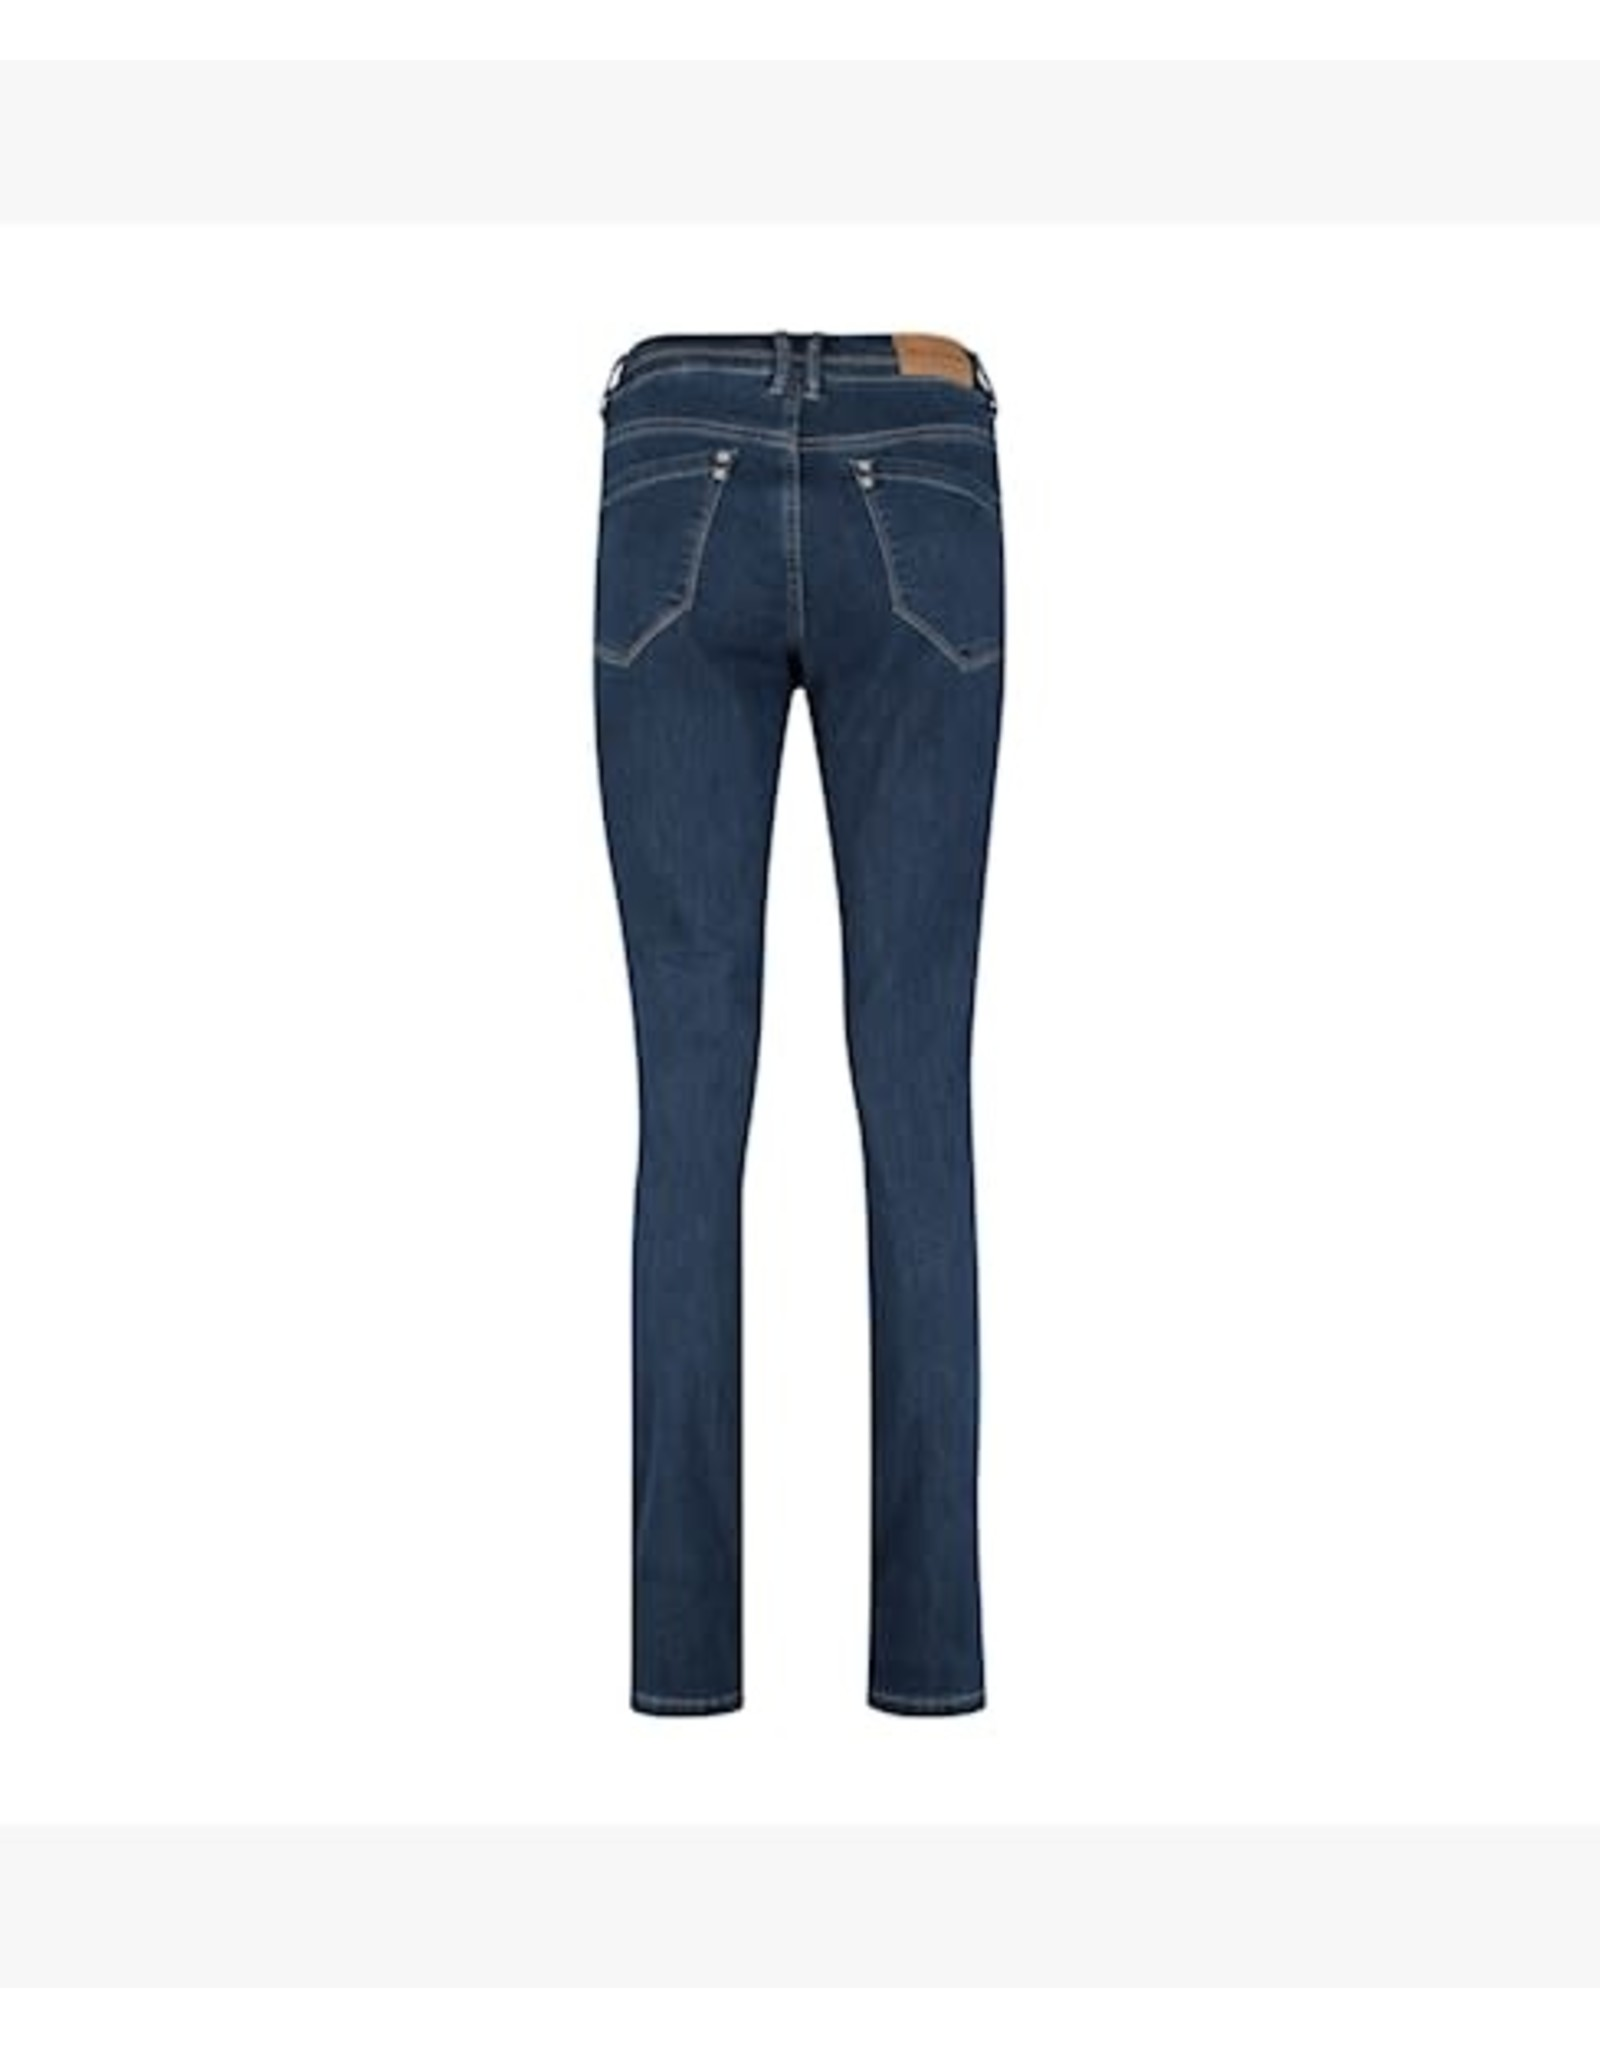 Red Button Red Button Cathy Blue Denim SRB2788